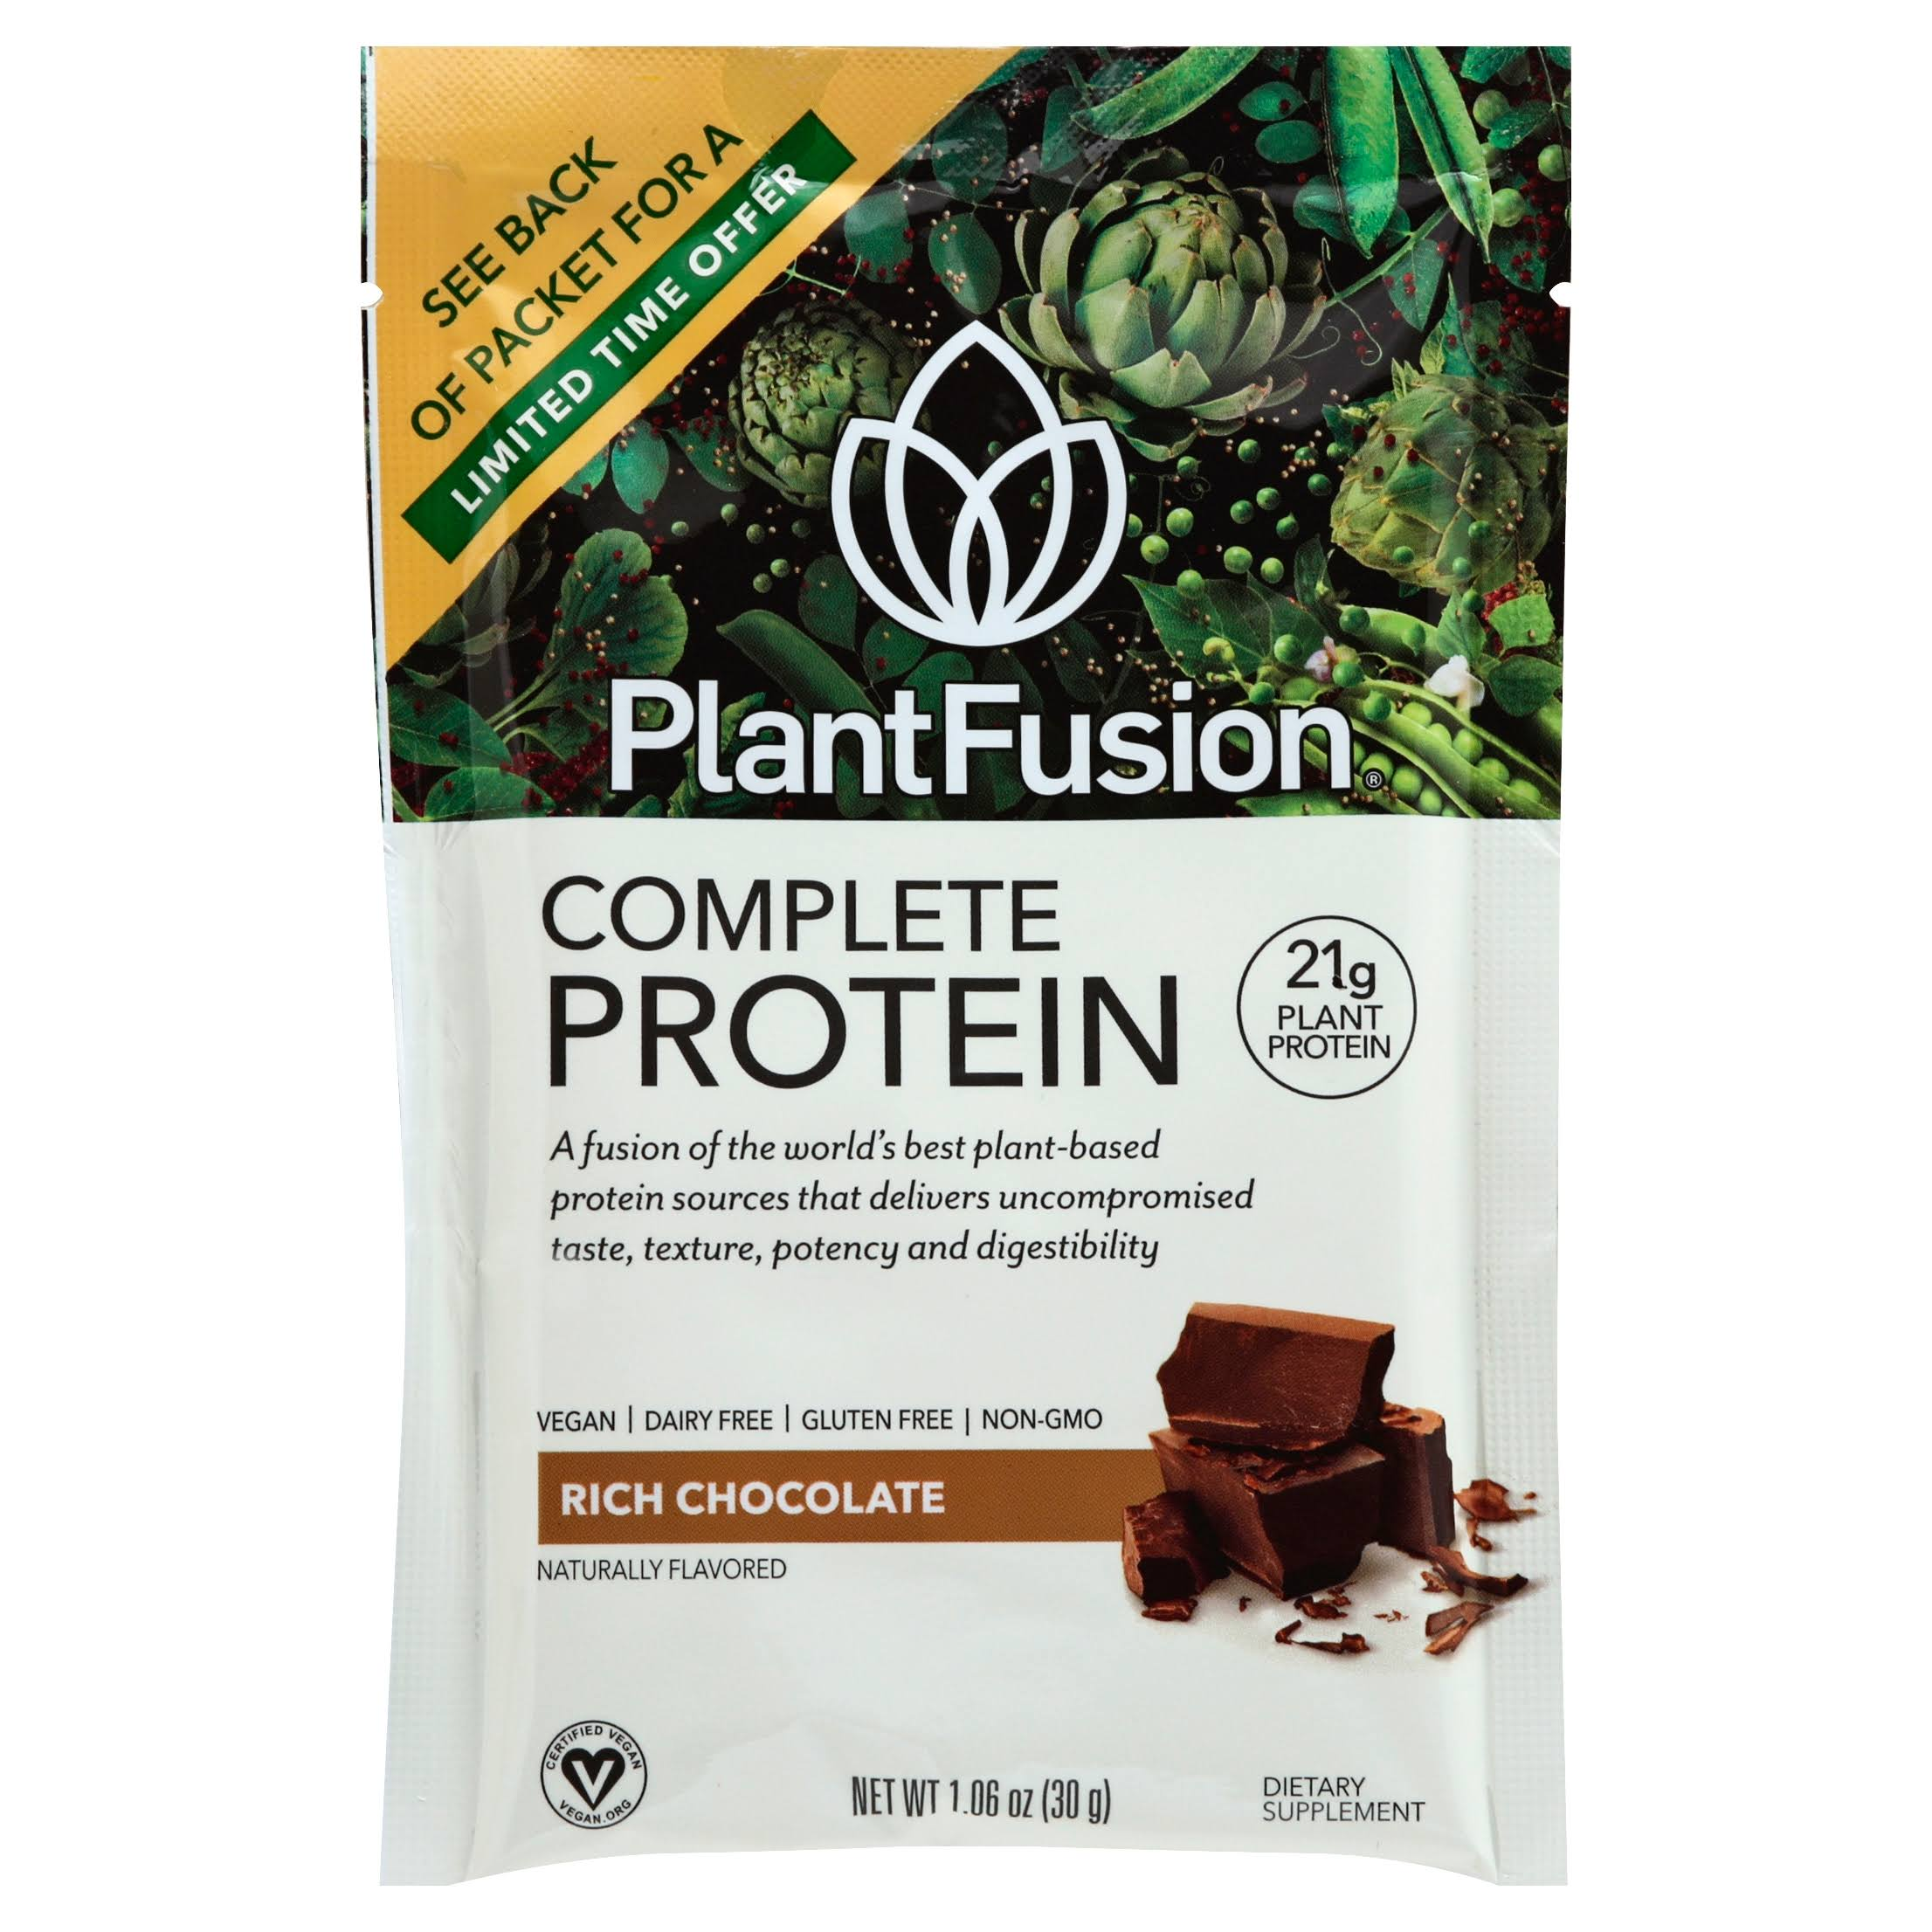 PlantFusion Protein Powder Packets, Chocolate - 12 count, 1.06 oz each